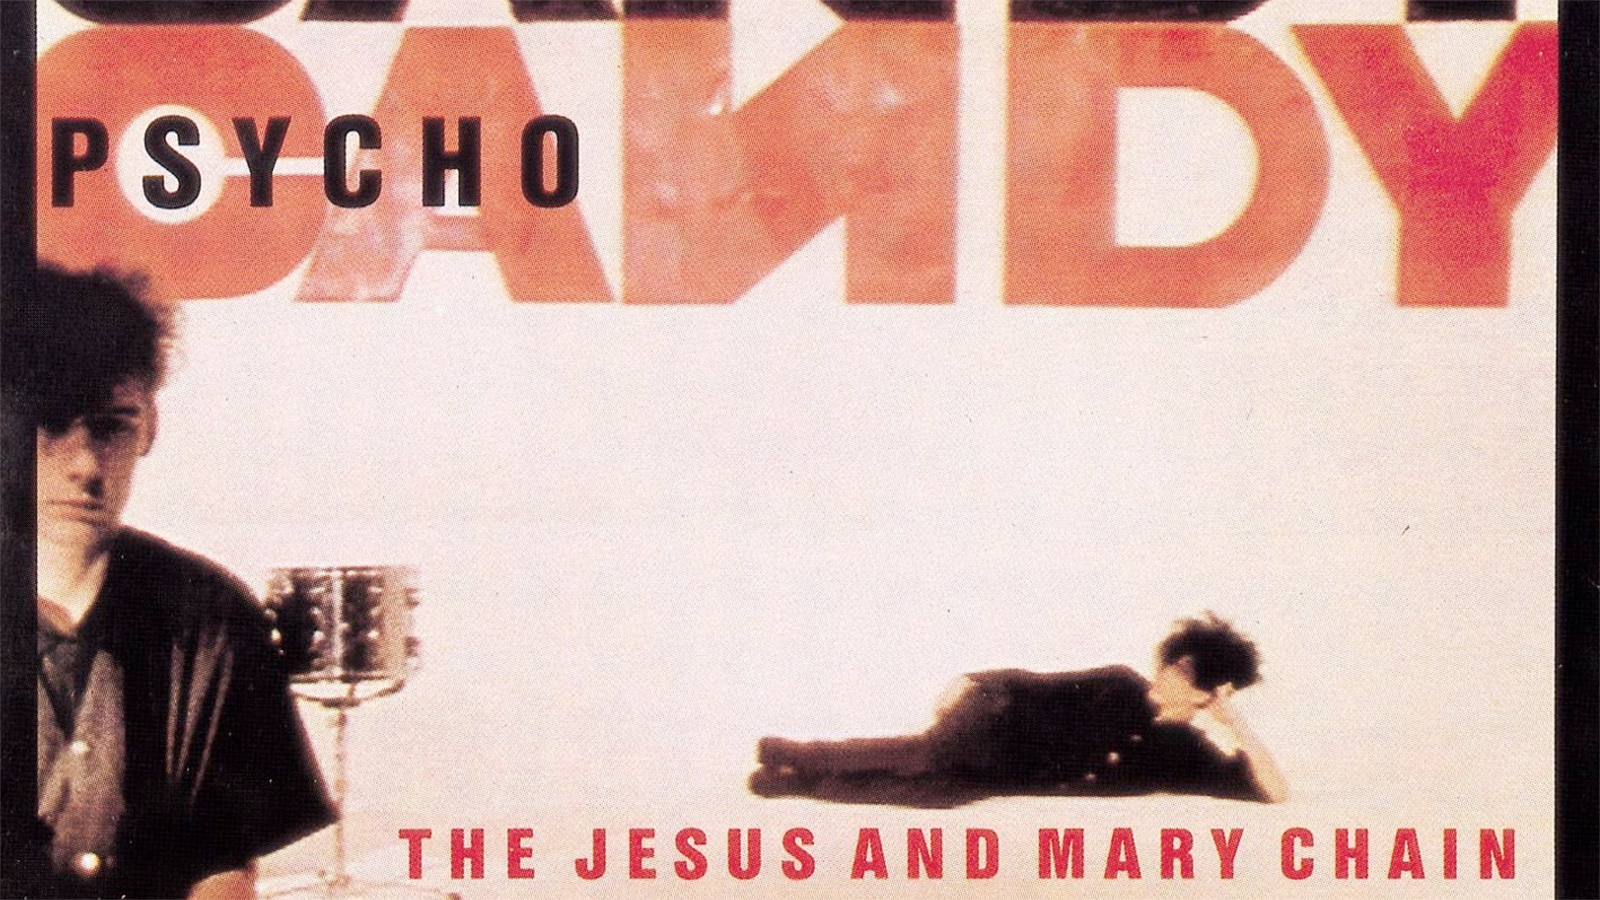 jesus and mary chain portada.jpg